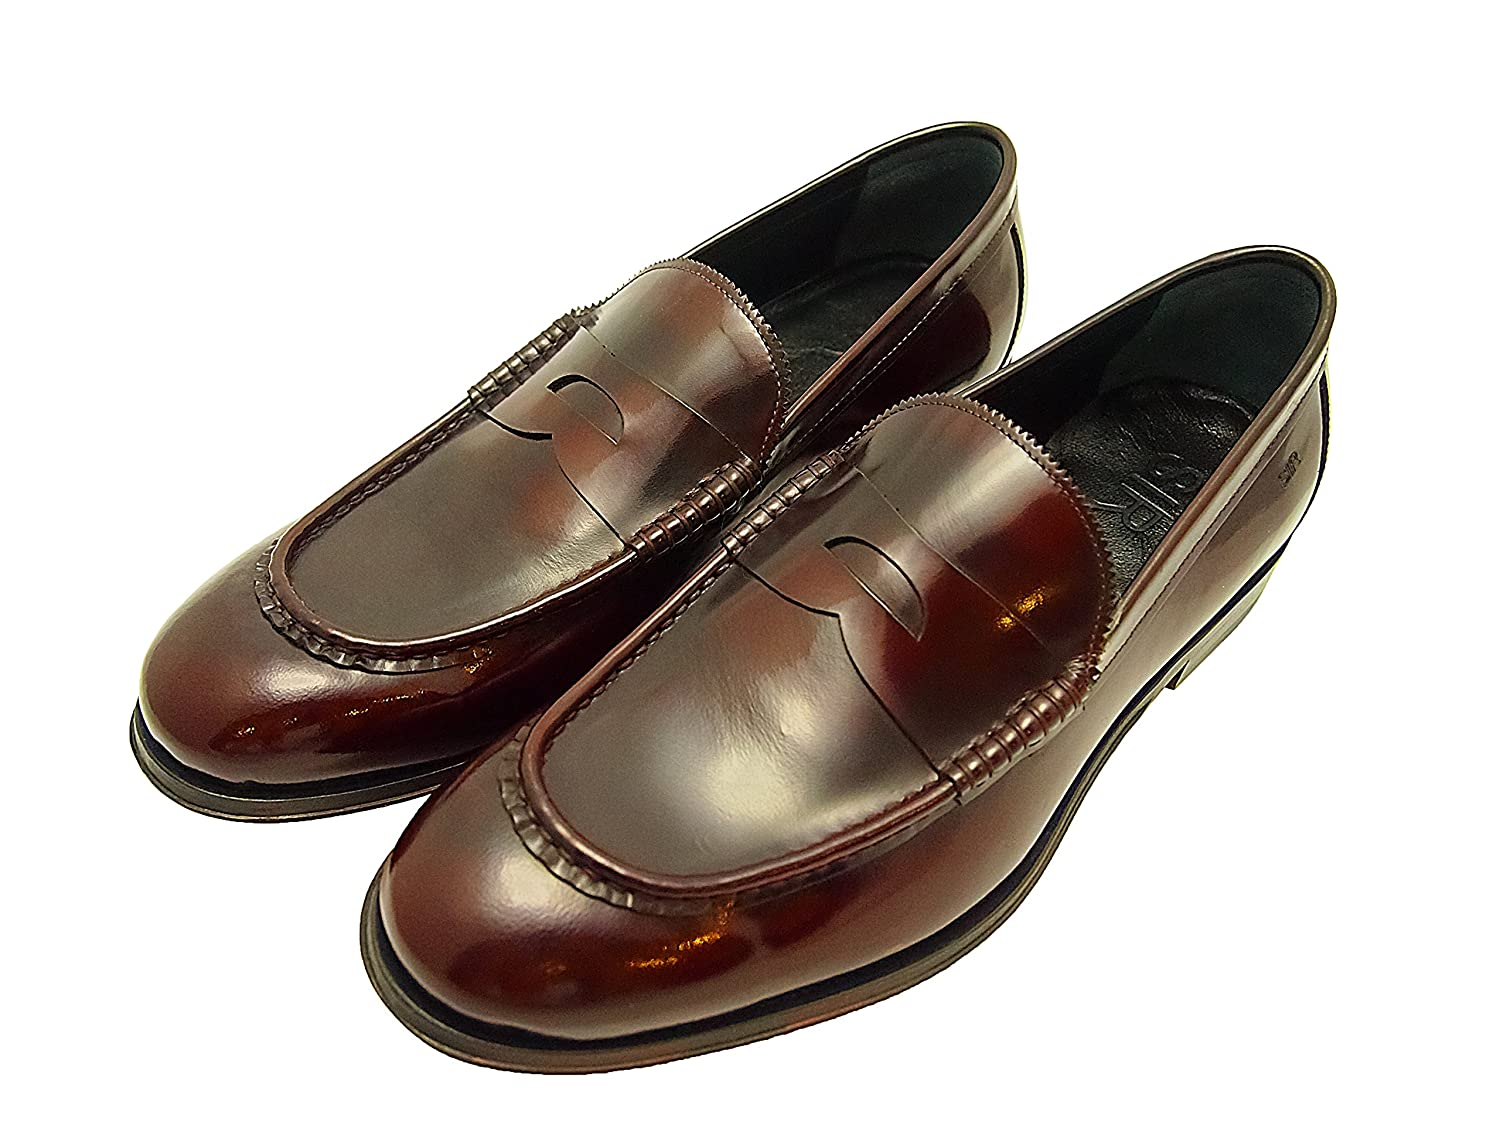 Sir Men's Leather Dress Shoes - Noah Bordeaux Slip-On Leather Loafers